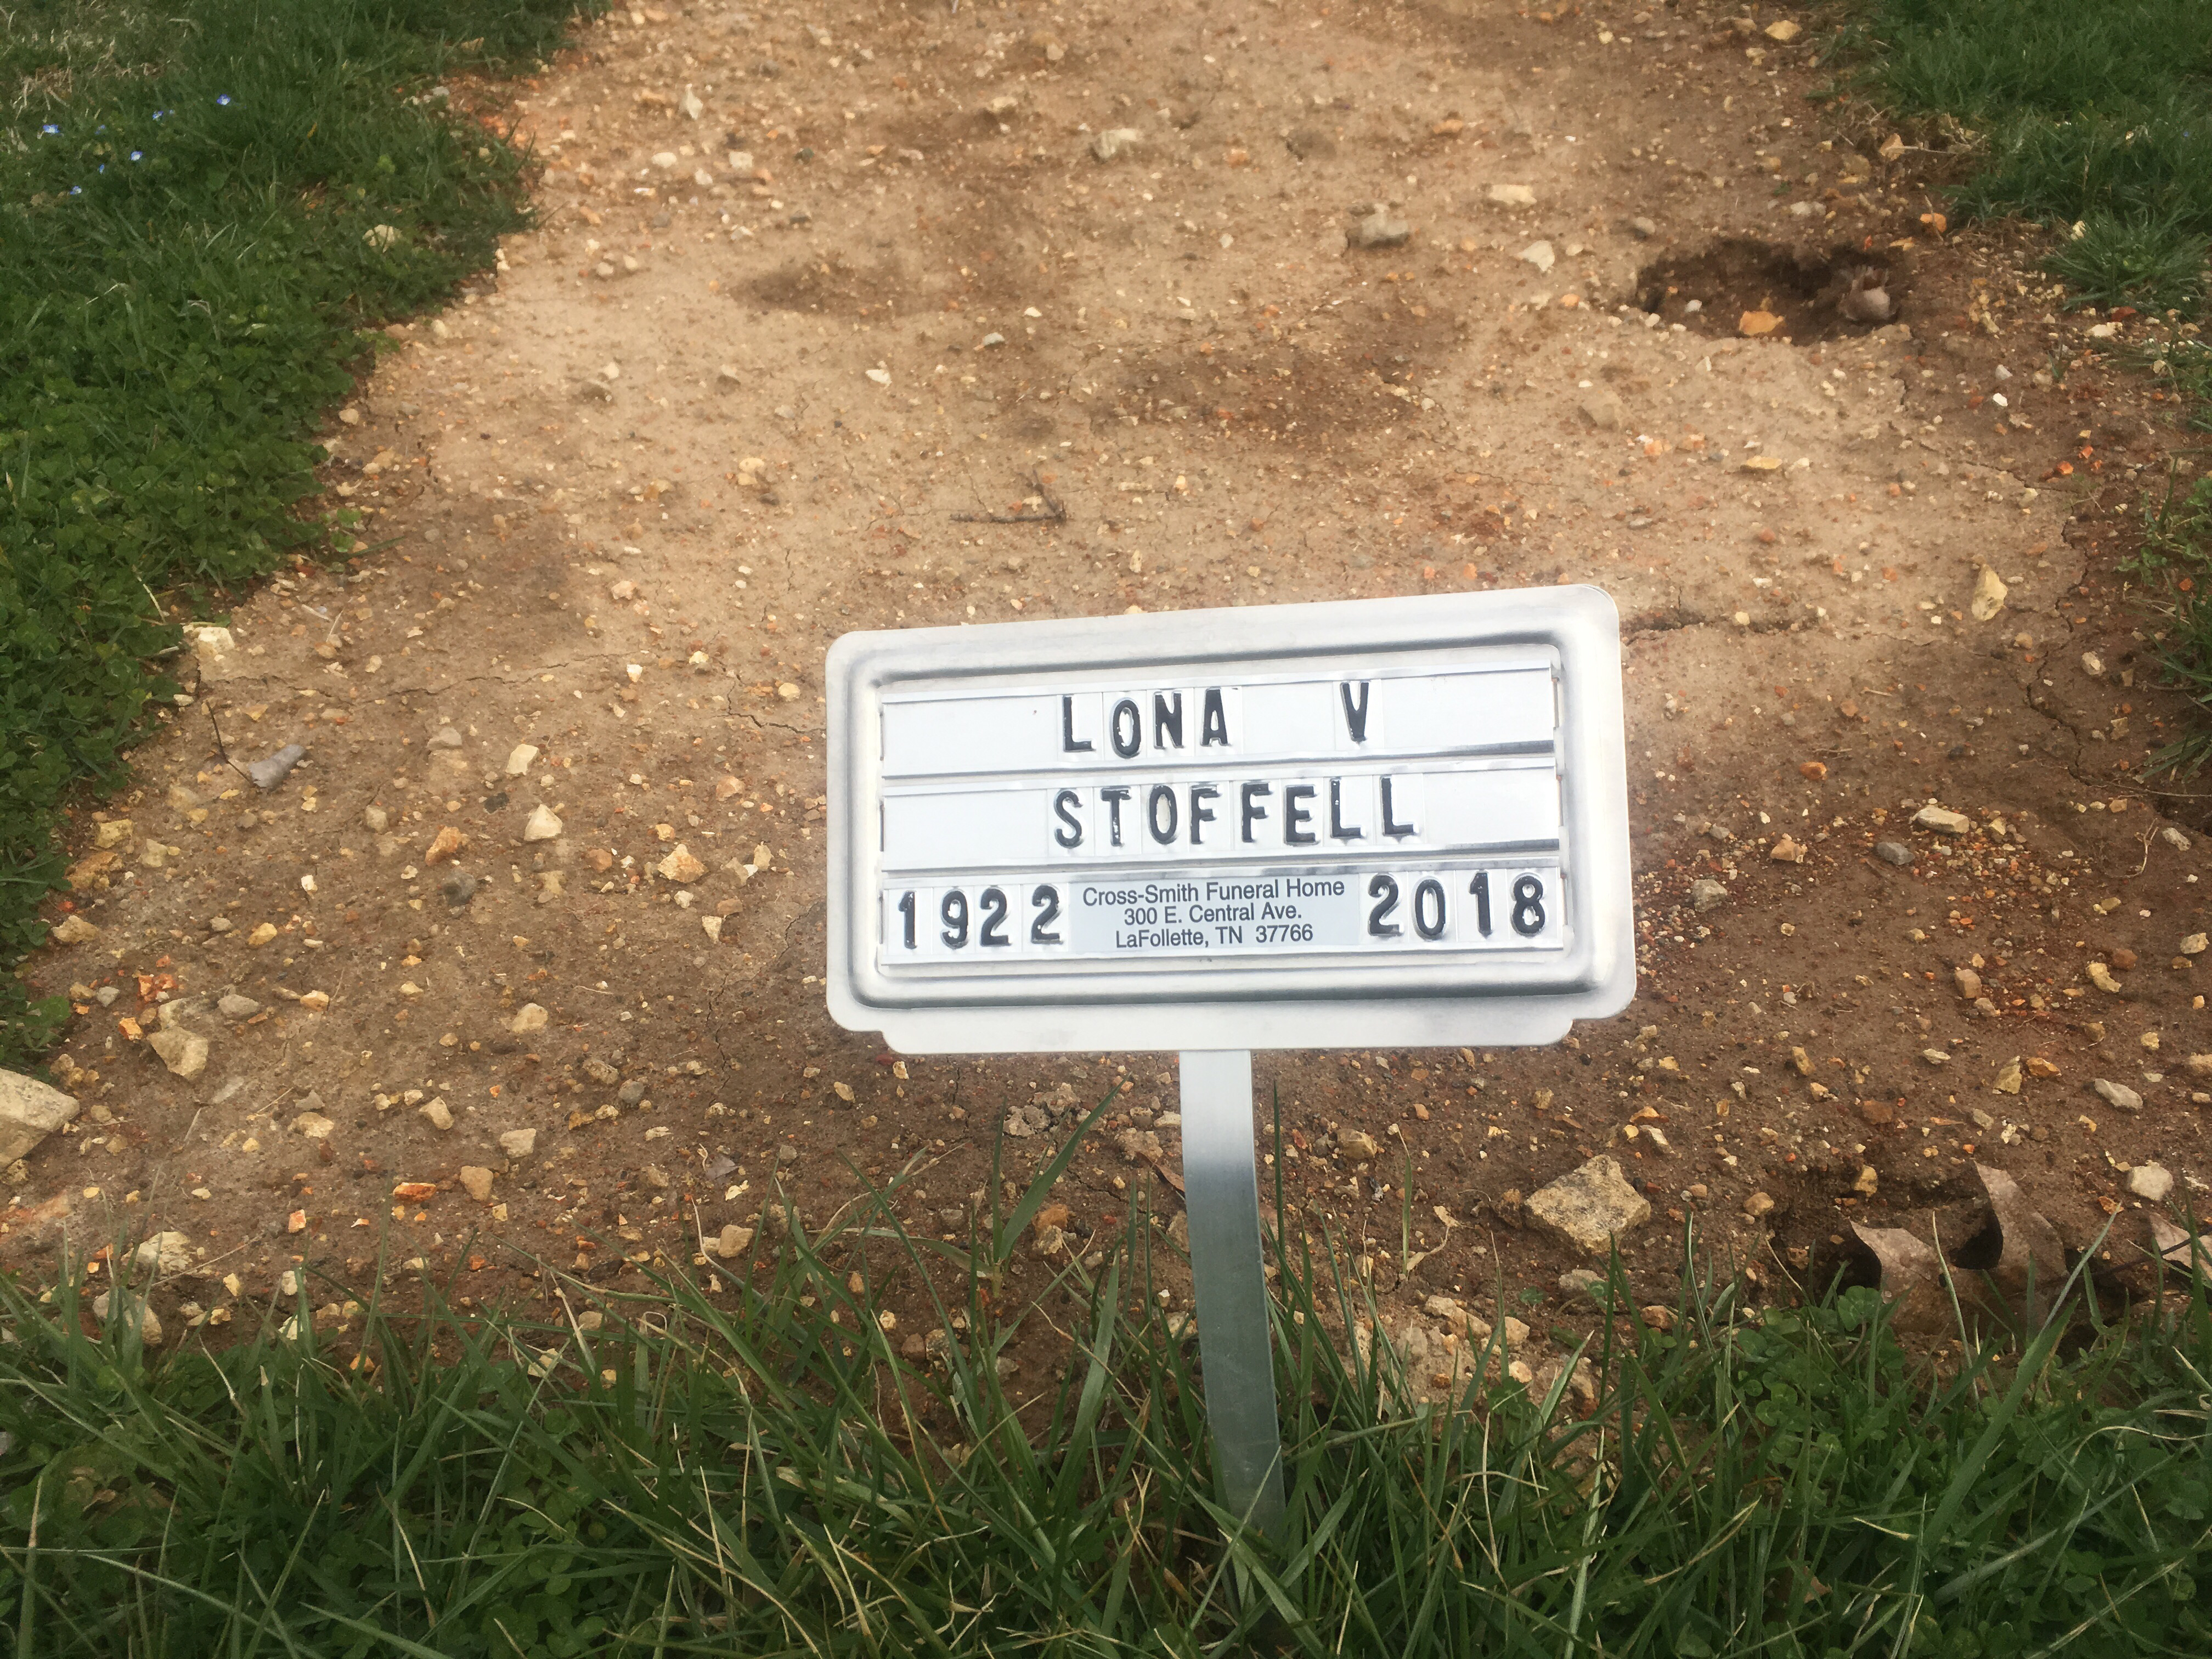 Lona V Stoffell 1922 2018 Find A Grave Memorial